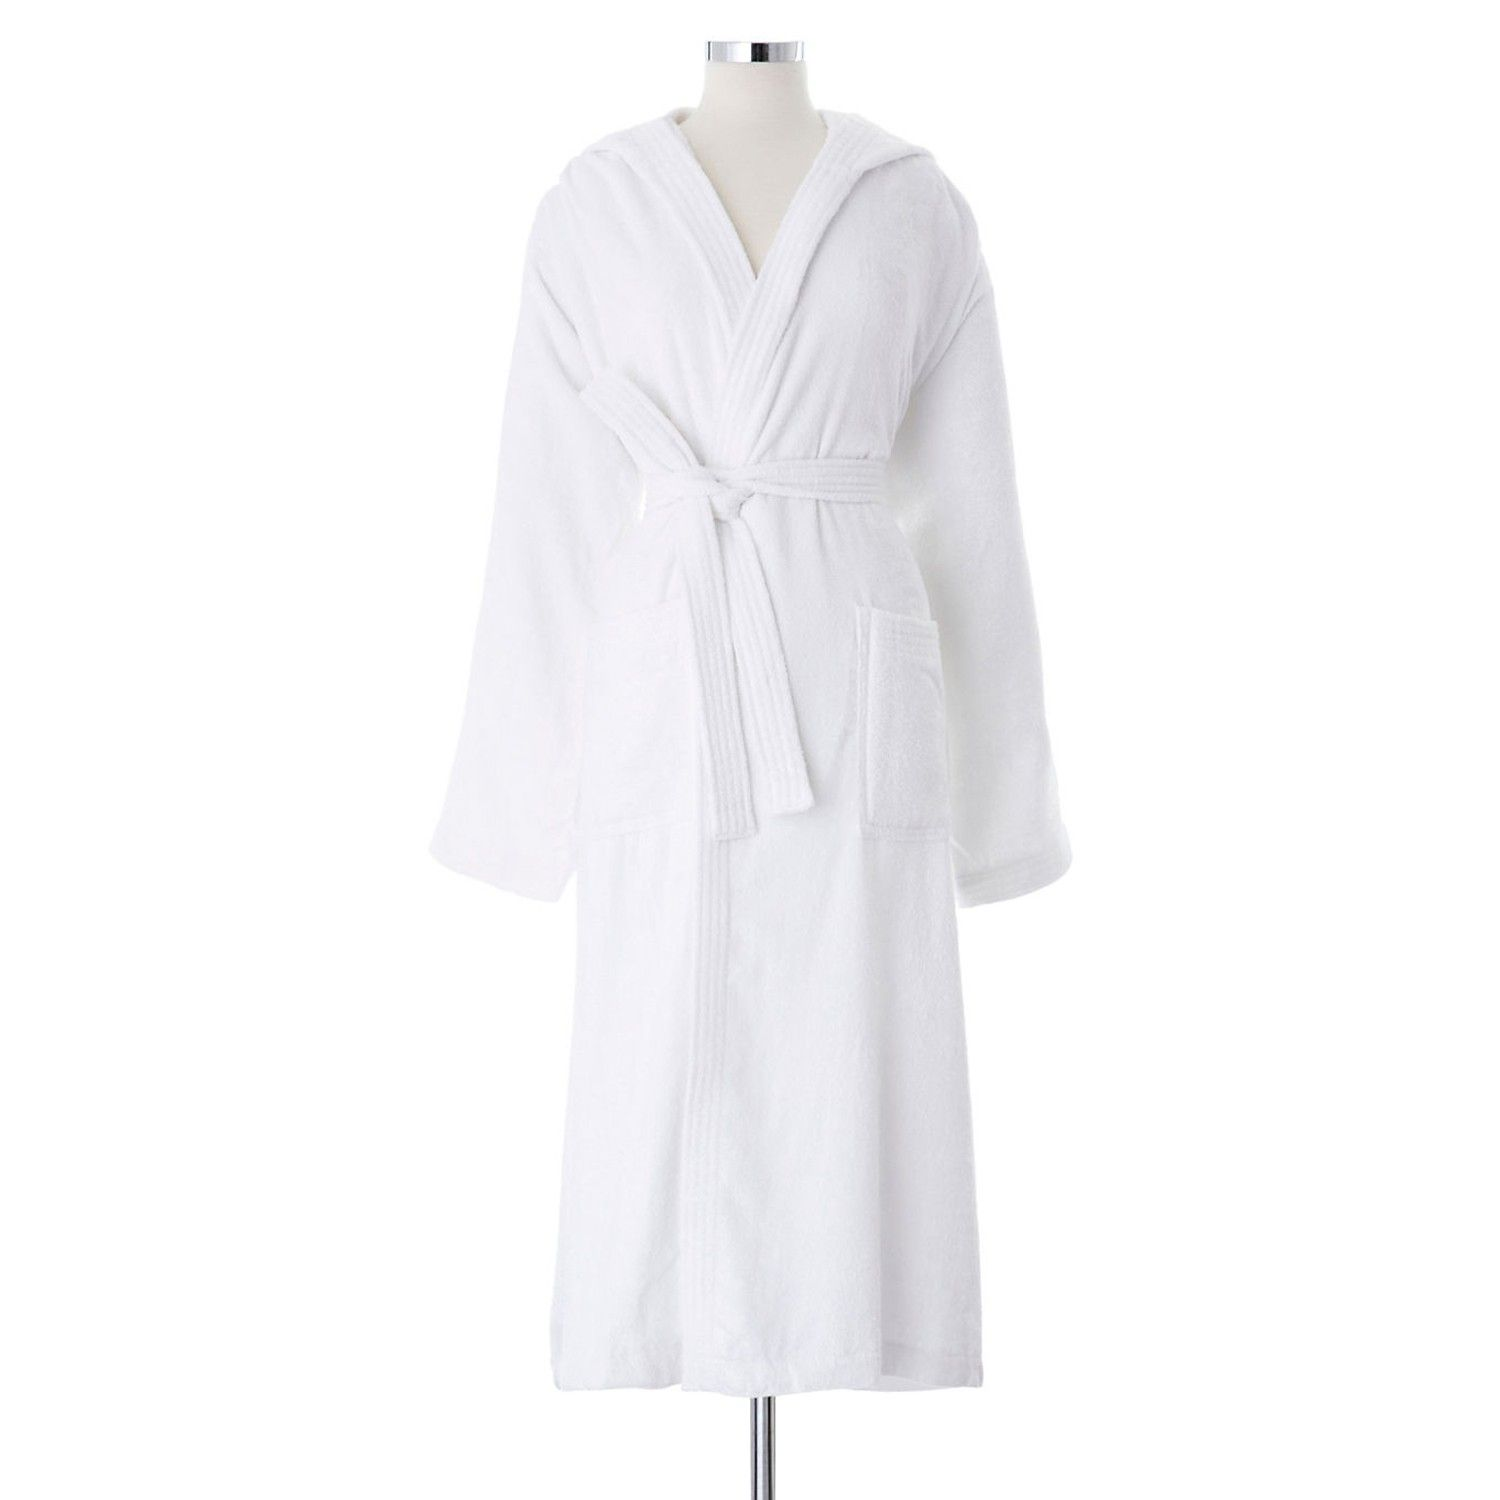 0c2ed3d201 Categories Bamboo Towels Bamboo Sheets Duvets   Blankets Bamboo Bathrobes  Women s Clothing Men s Clothing .